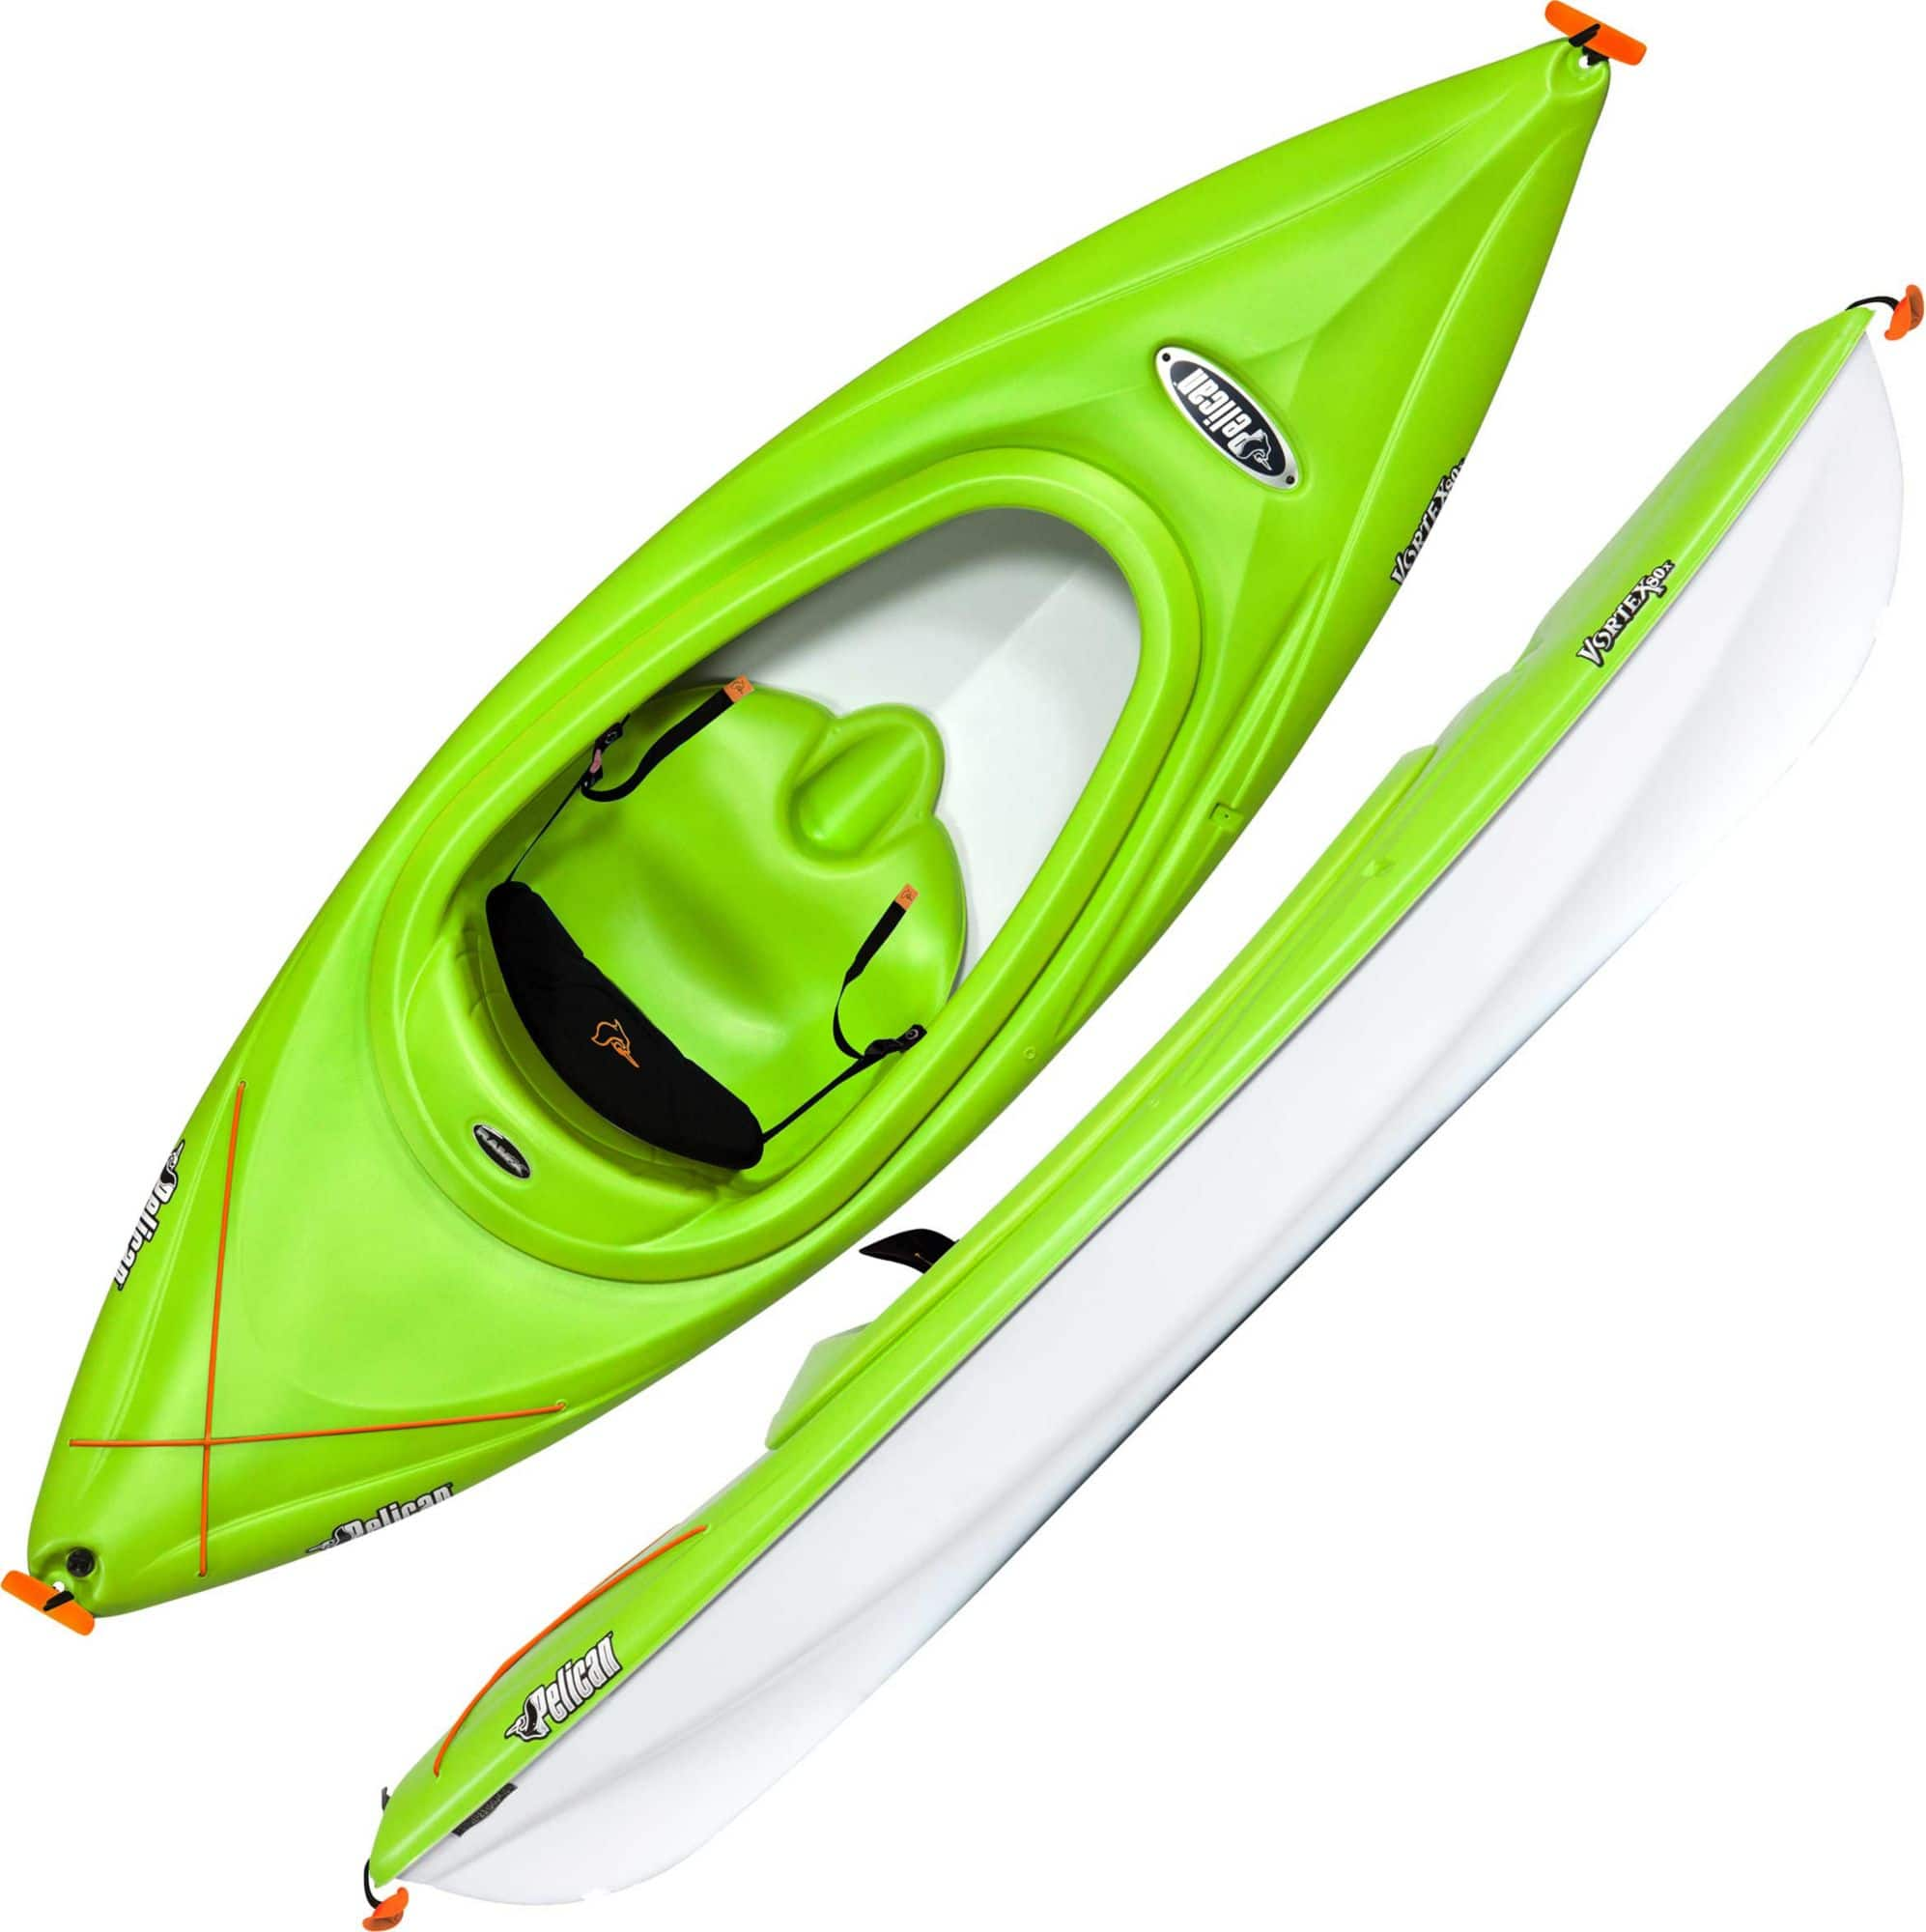 Pelican Vortex Dlx 80 Kayak 129 With Free In Store Pick Up